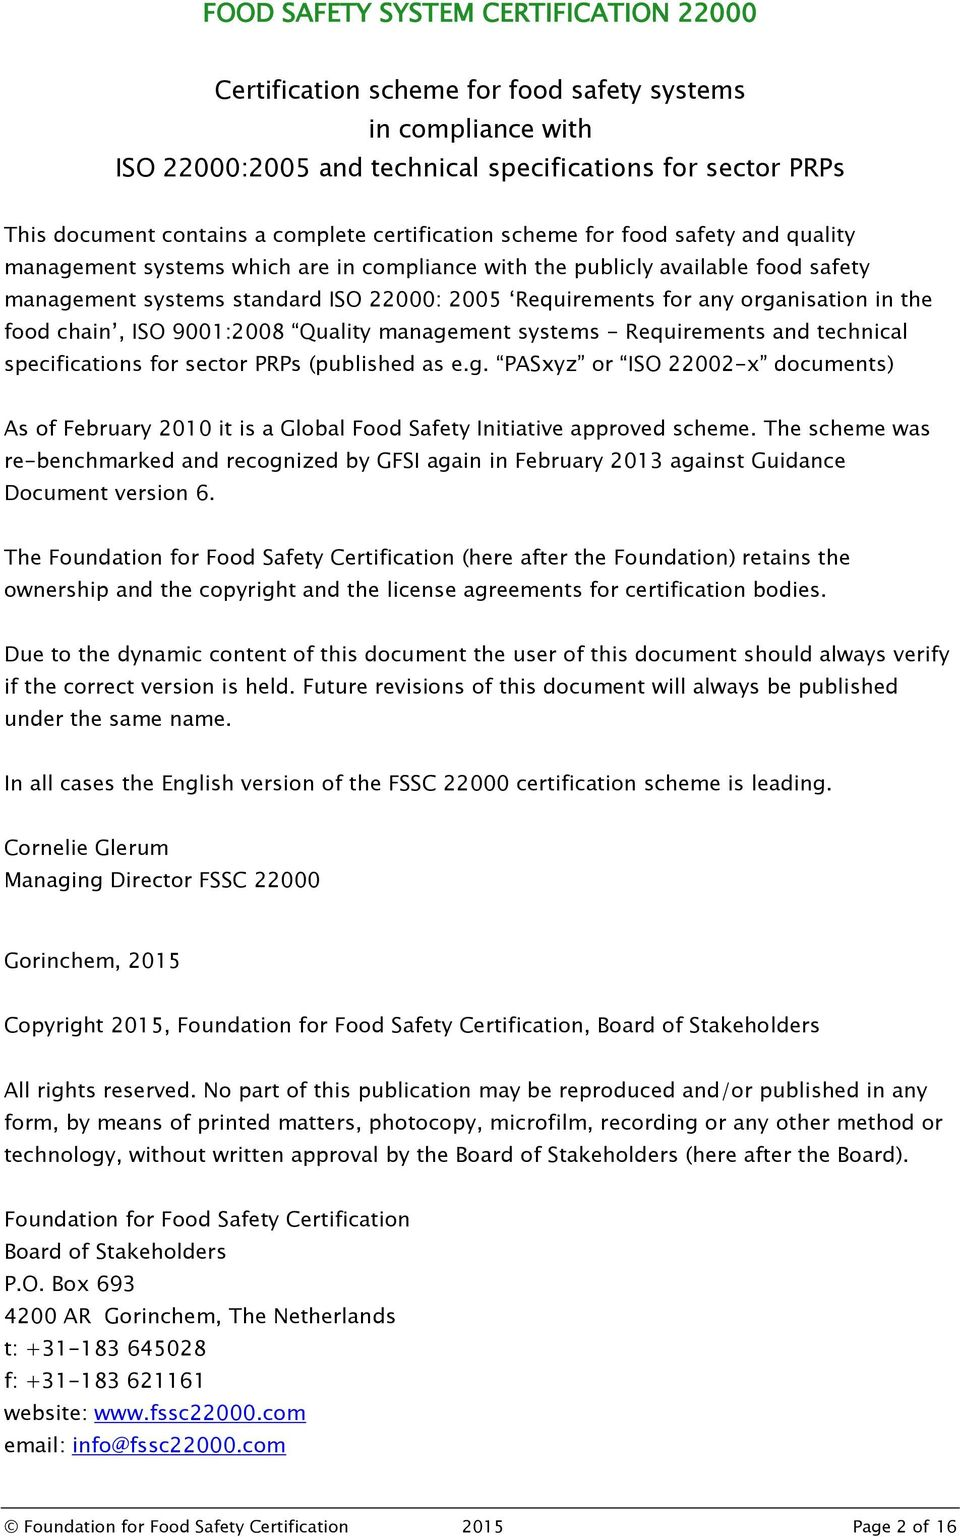 organisation in the food chain, ISO 9001:2008 Quality management systems - Requirements and technical specifications for sector PRPs (published as e.g. PASxyz or ISO 22002-x documents) As of February 2010 it is a Global Food Safety Initiative approved scheme.